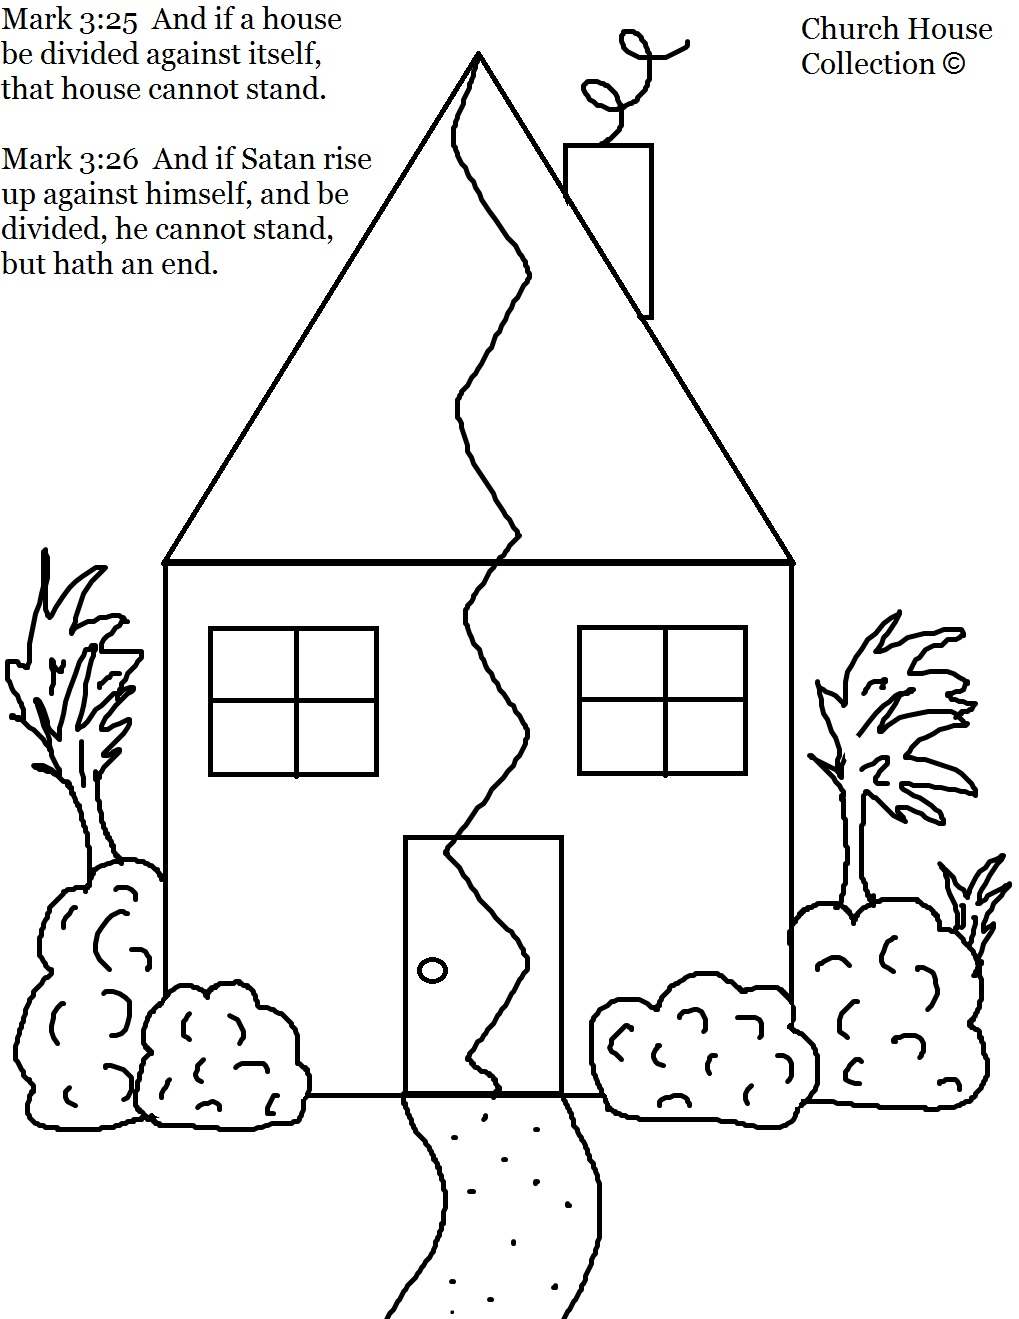 Church House Collection Blog Coloring Page For Mark 325